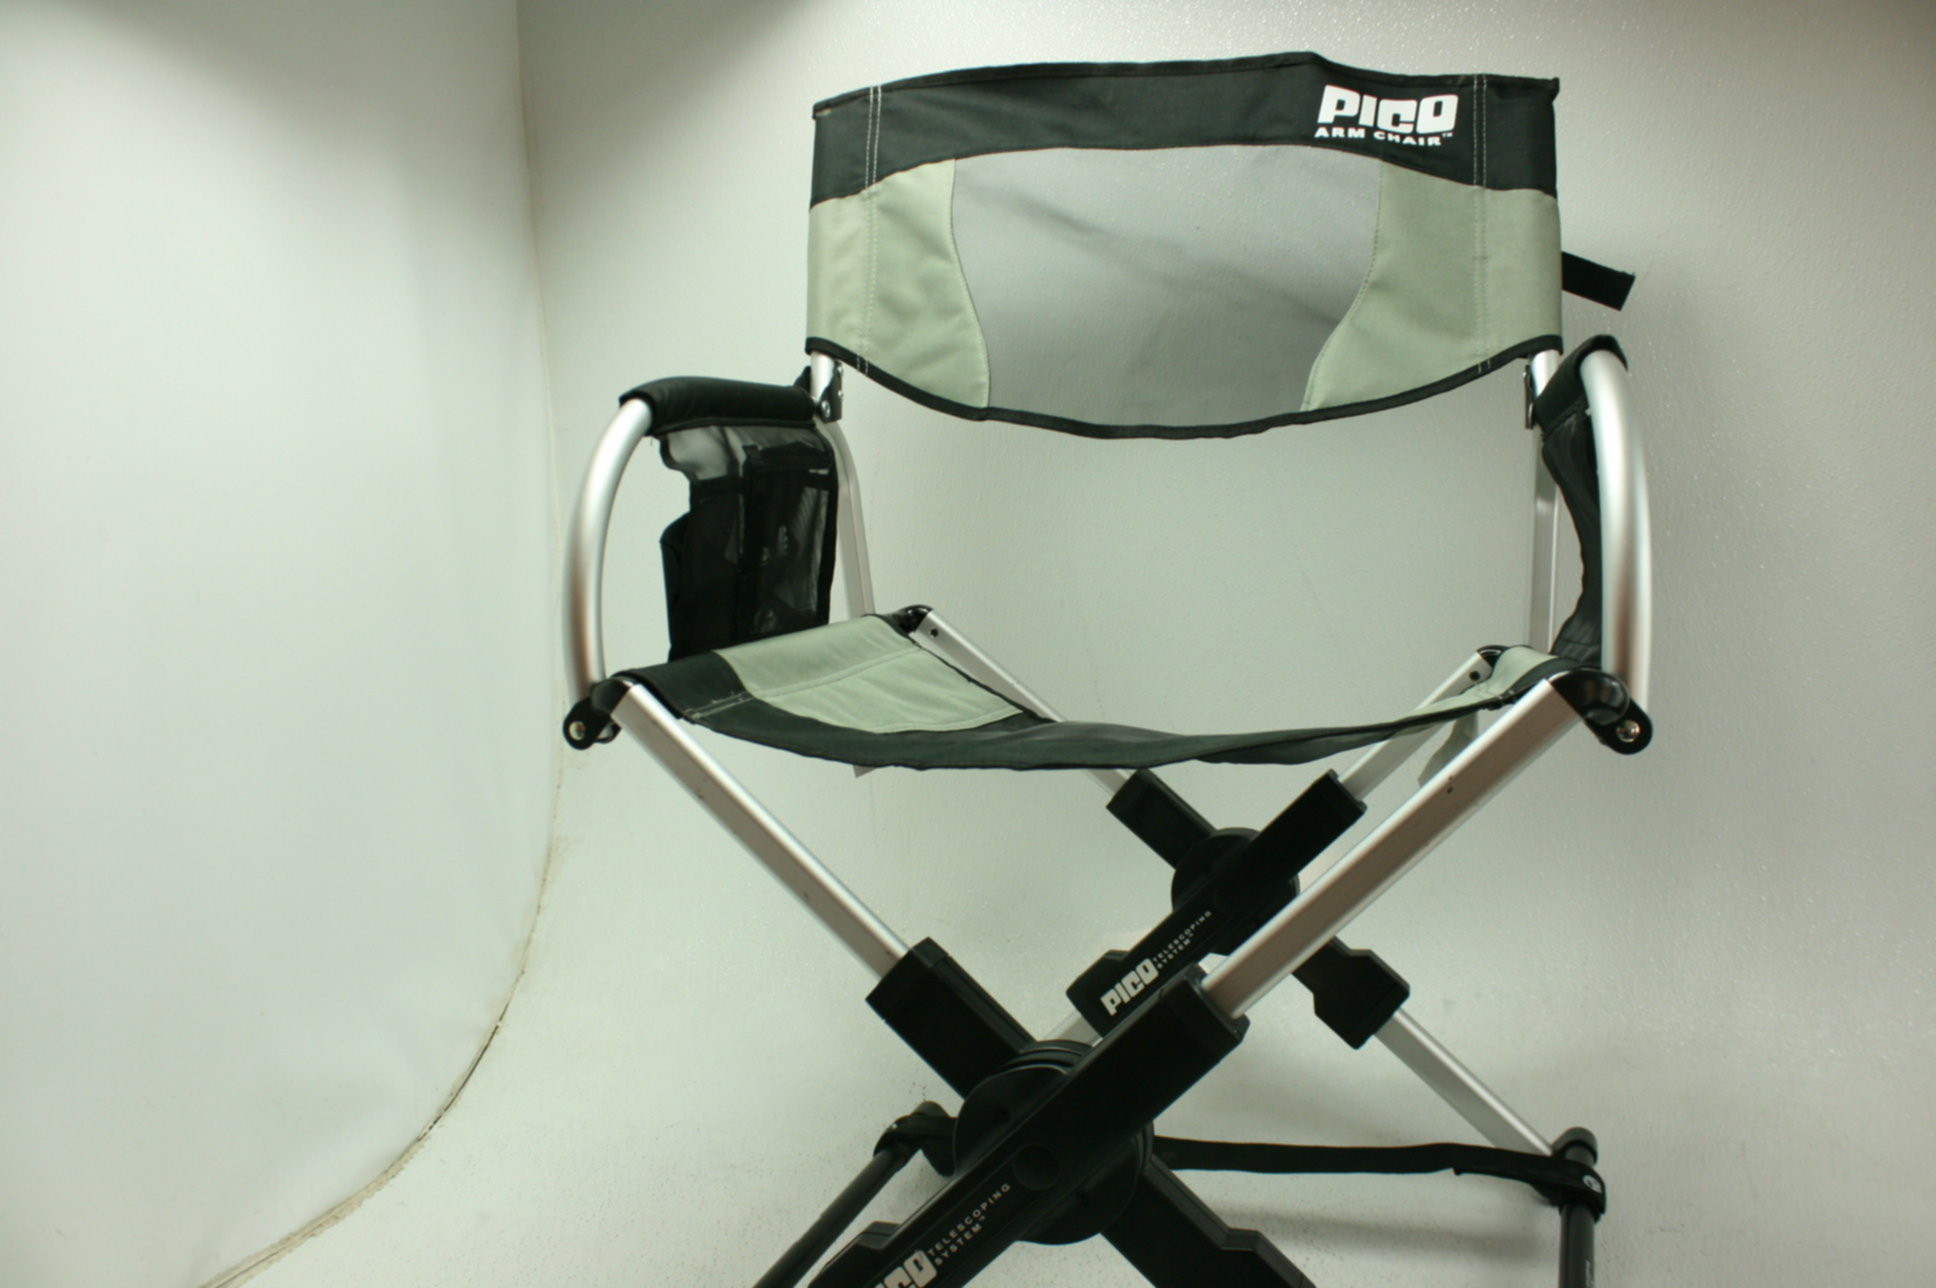 Collapsible Chair Details About Gci Outdoor Pico Compact Folding Camp Chair With Carry Bagsage Collapsible Chair